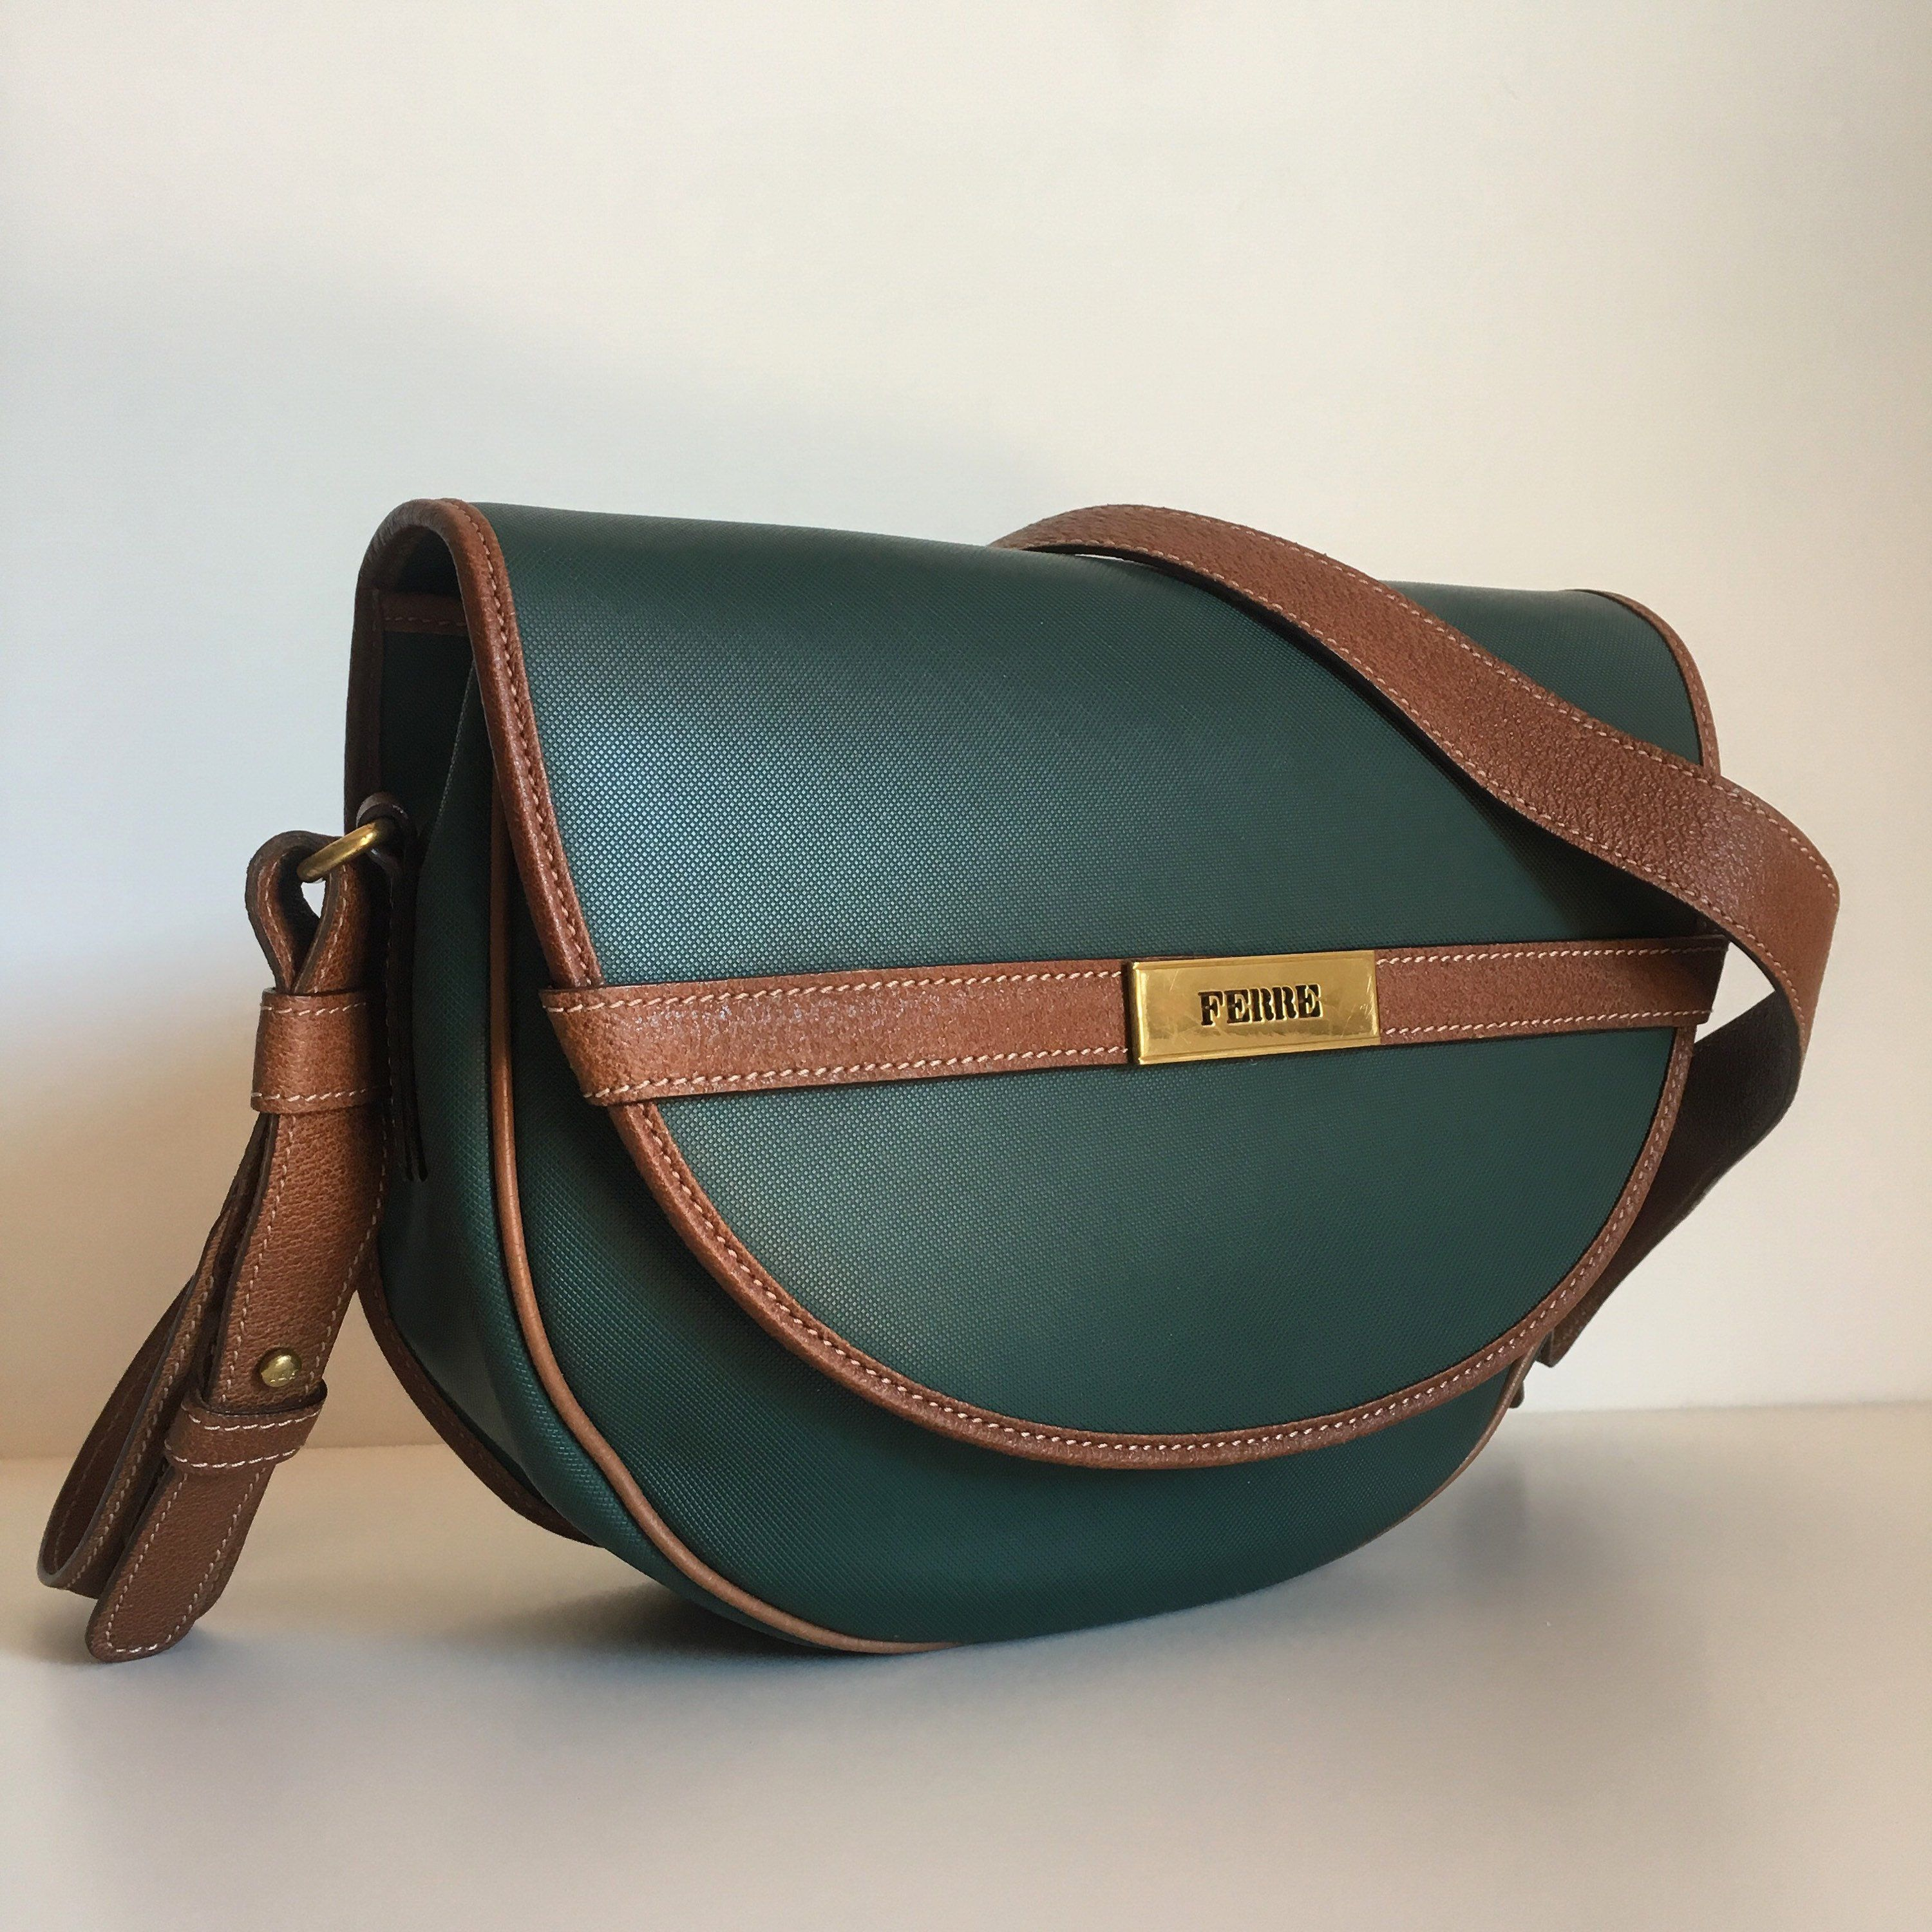 Now On Etsy Gianfranco Ferré Vintage Bag 80s Made In Italy S